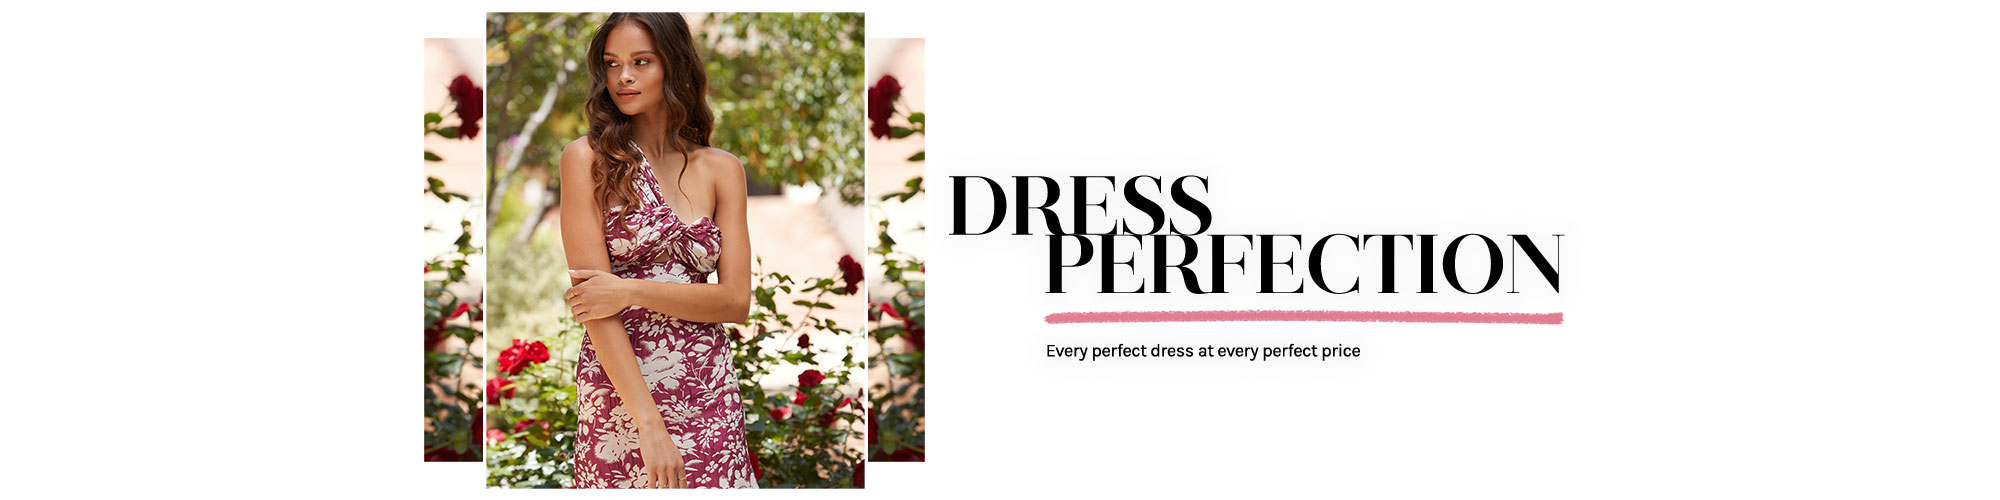 Dress Perfection. Every perfect dress at every perfect price.